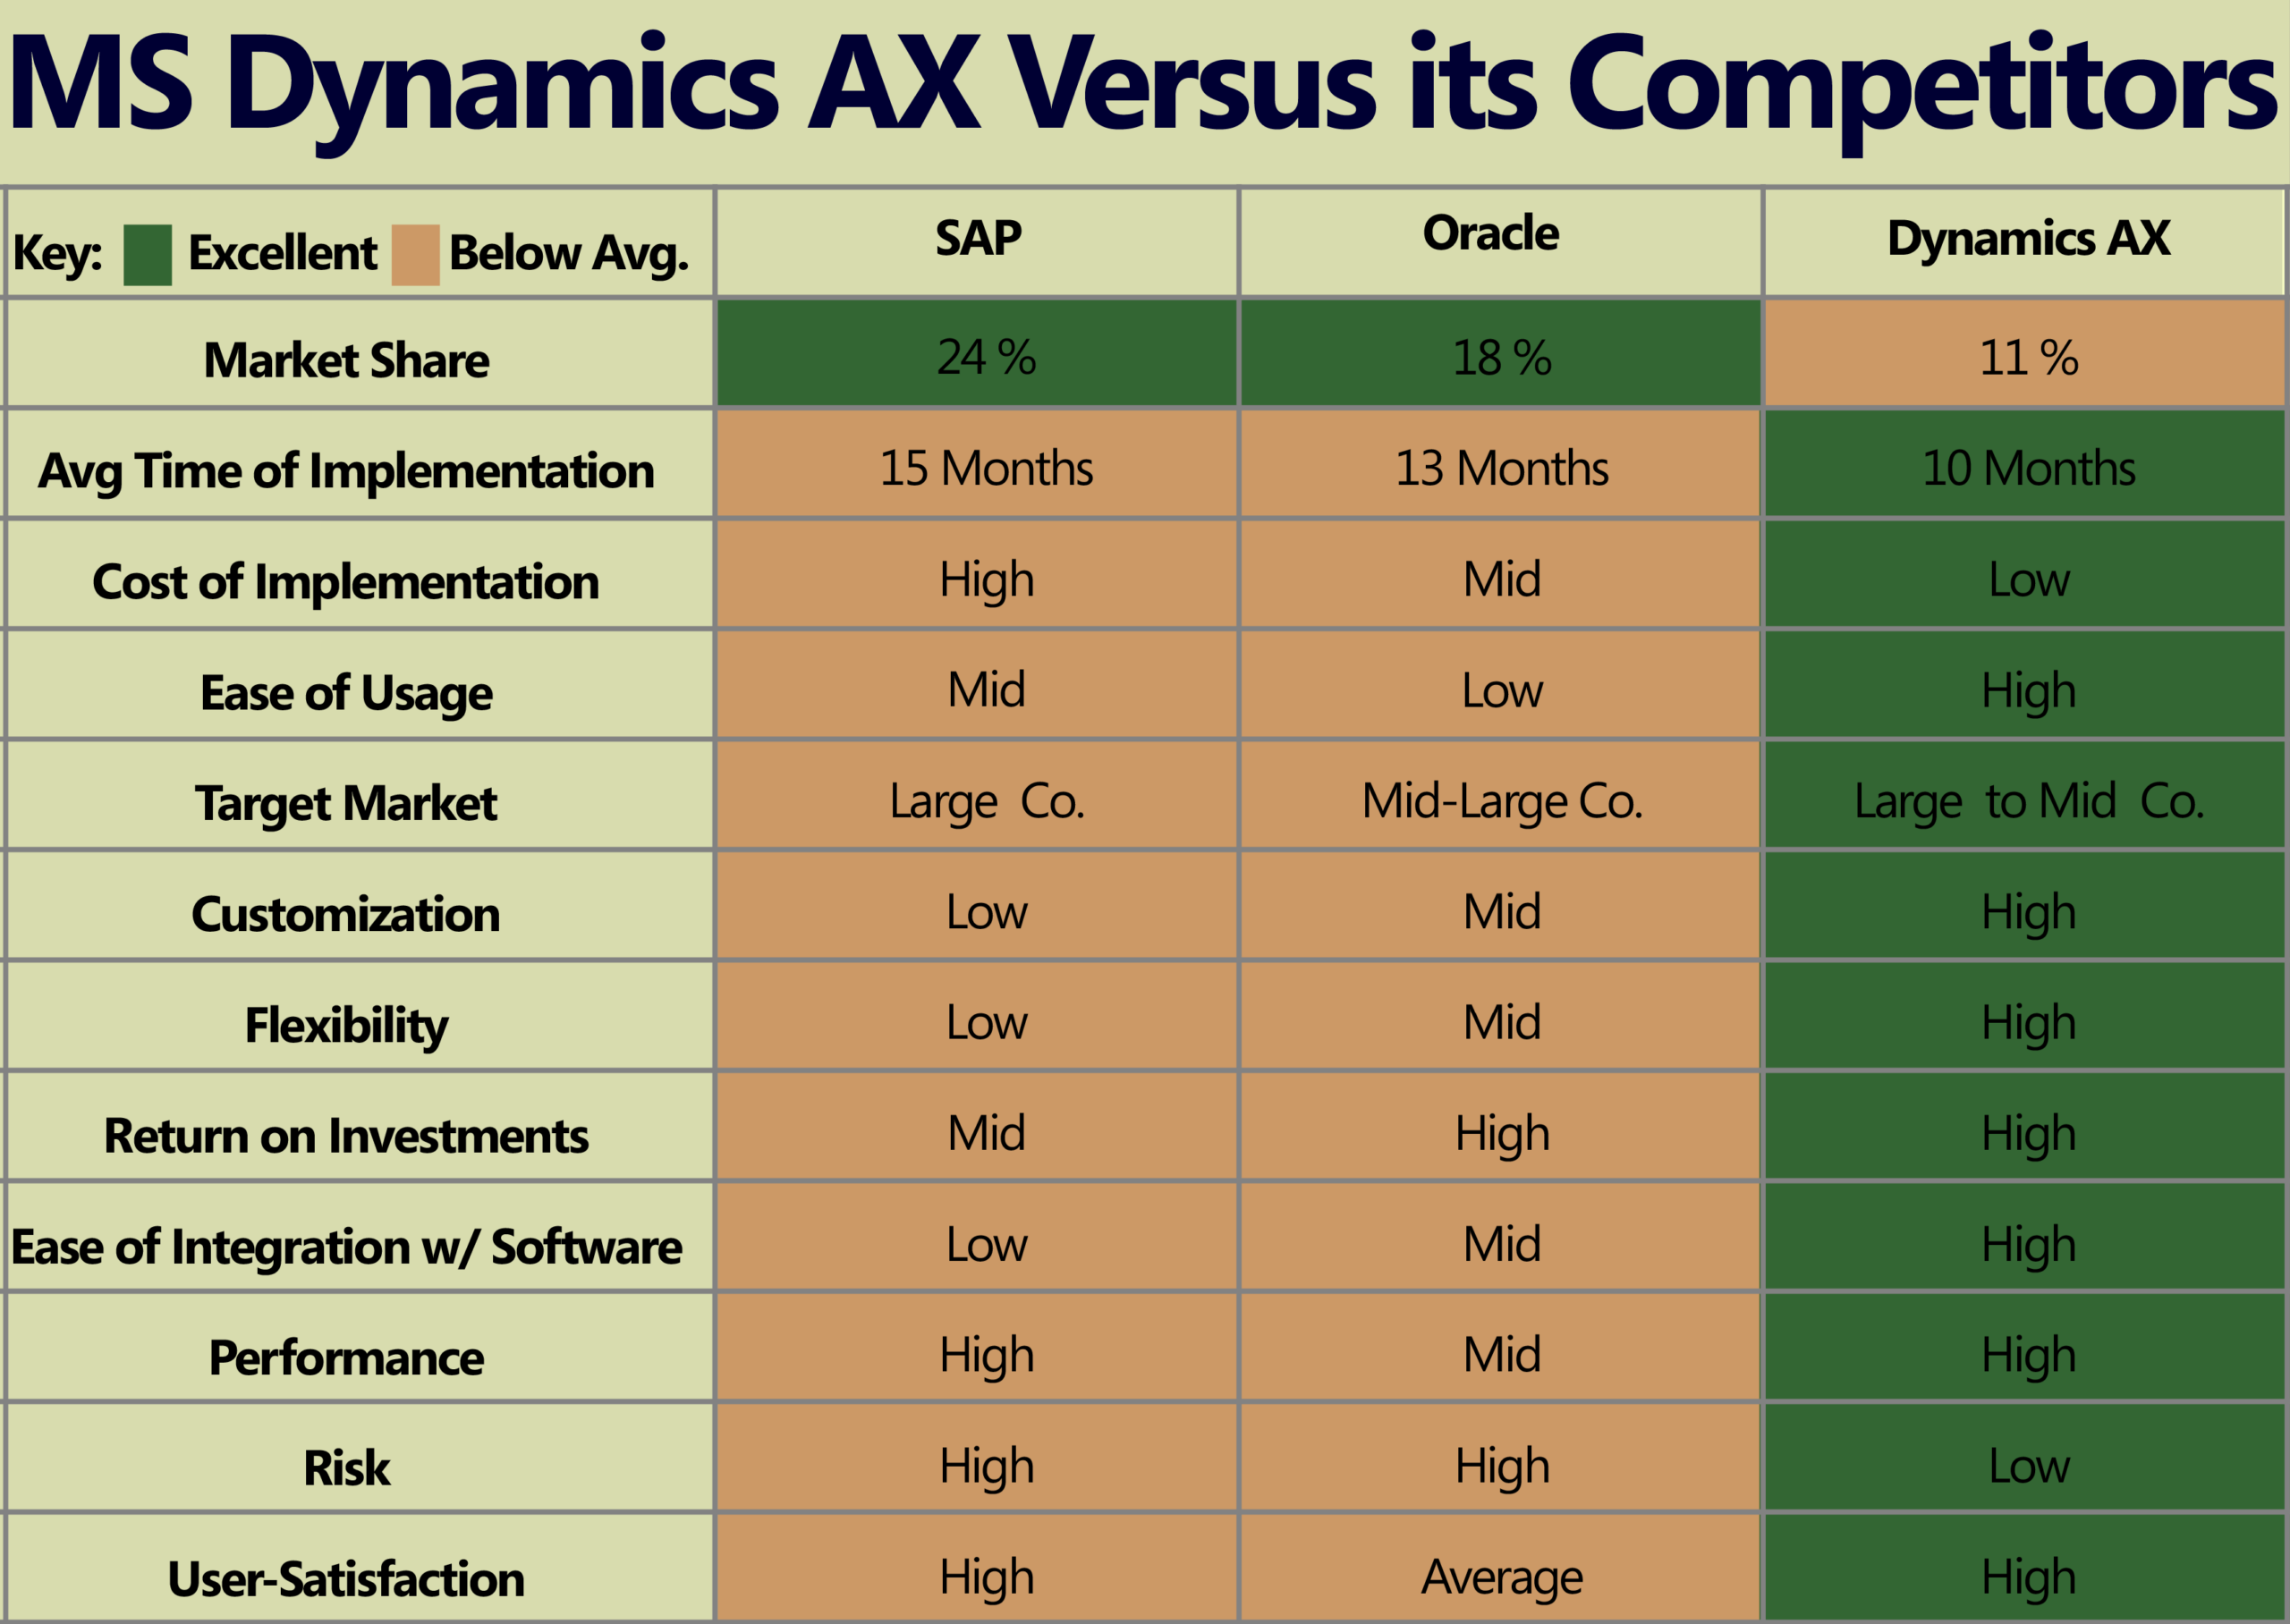 Dynamics AX On-Premise versus competitors